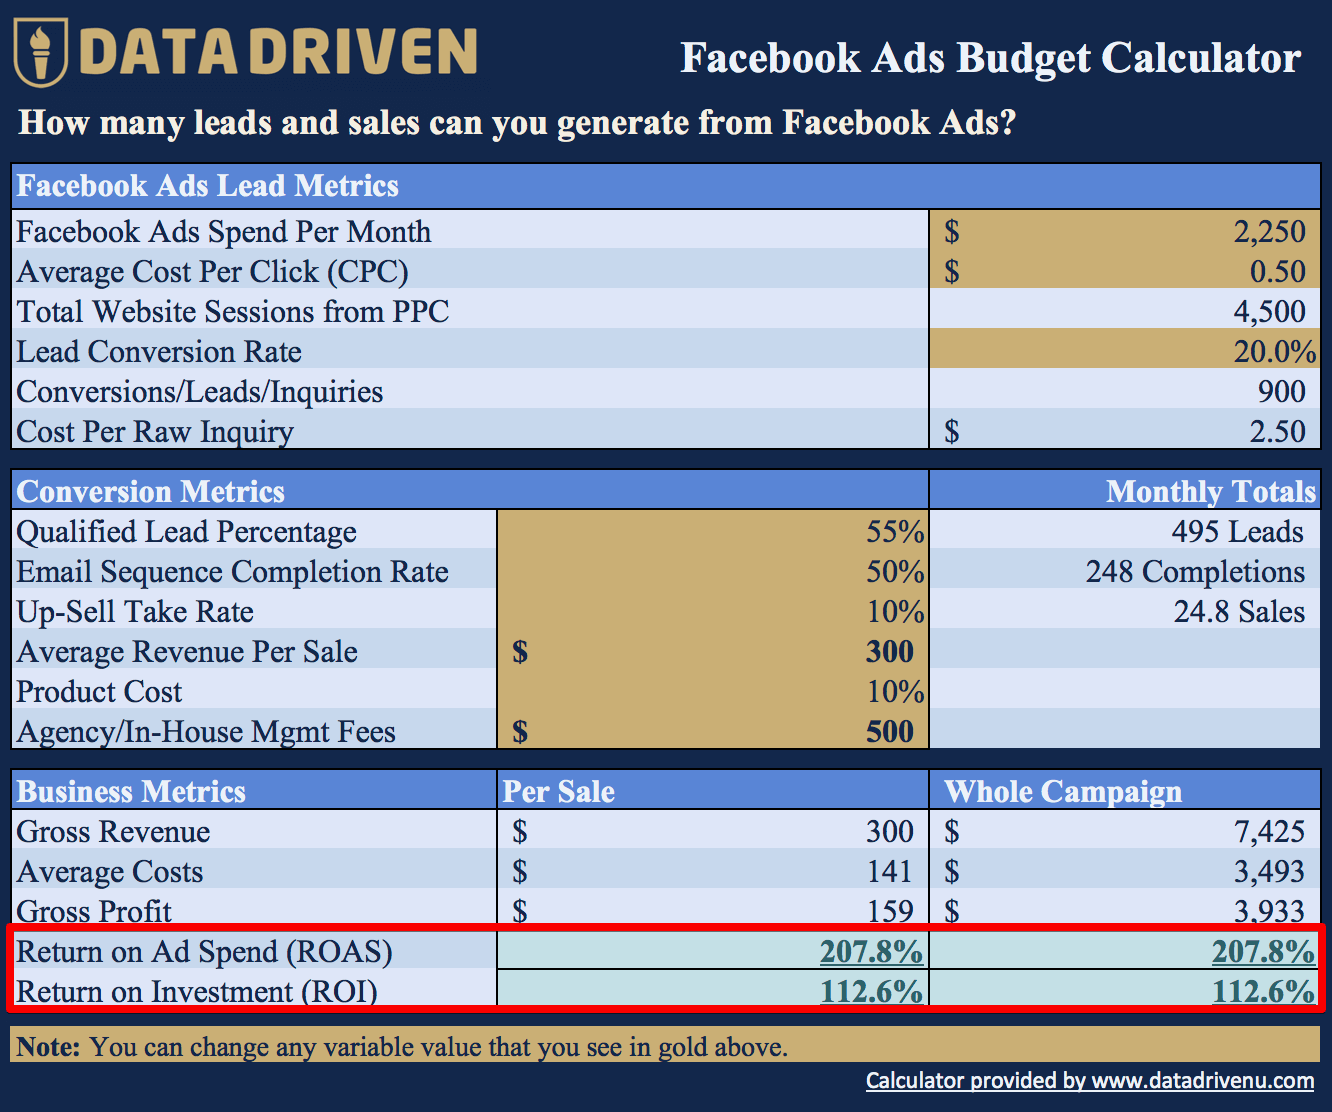 Facebook Ads Budget Results